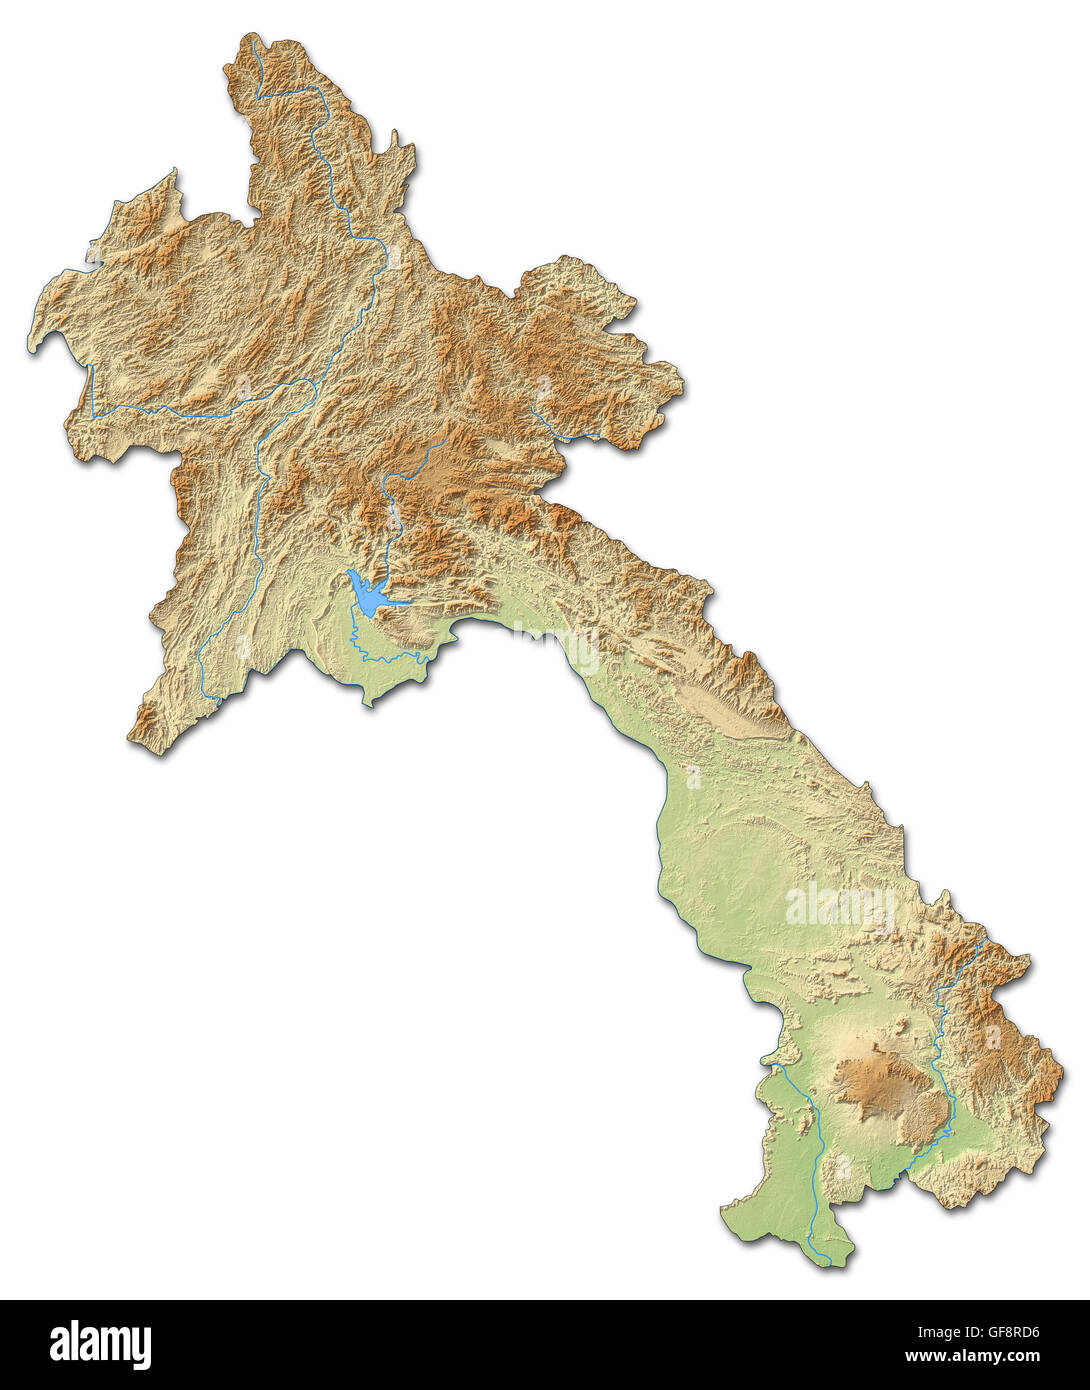 Laos On A World Map.Relief Map Of Laos With Shaded Relief Stock Photo 112676066 Alamy